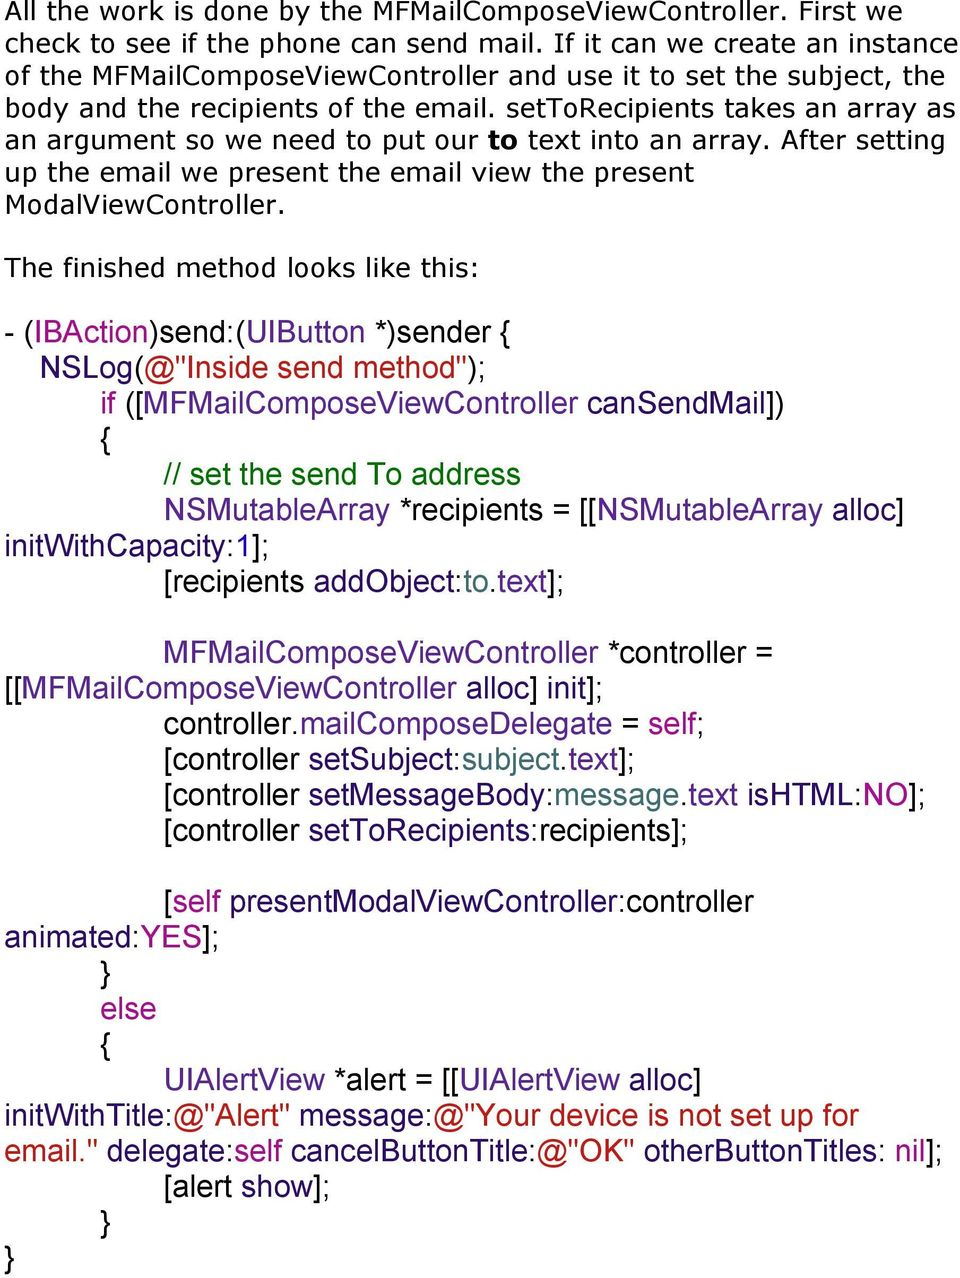 settorecipients takes an array as an argument so we need to put our to text into an array. After setting up the email we present the email view the present ModalViewController.